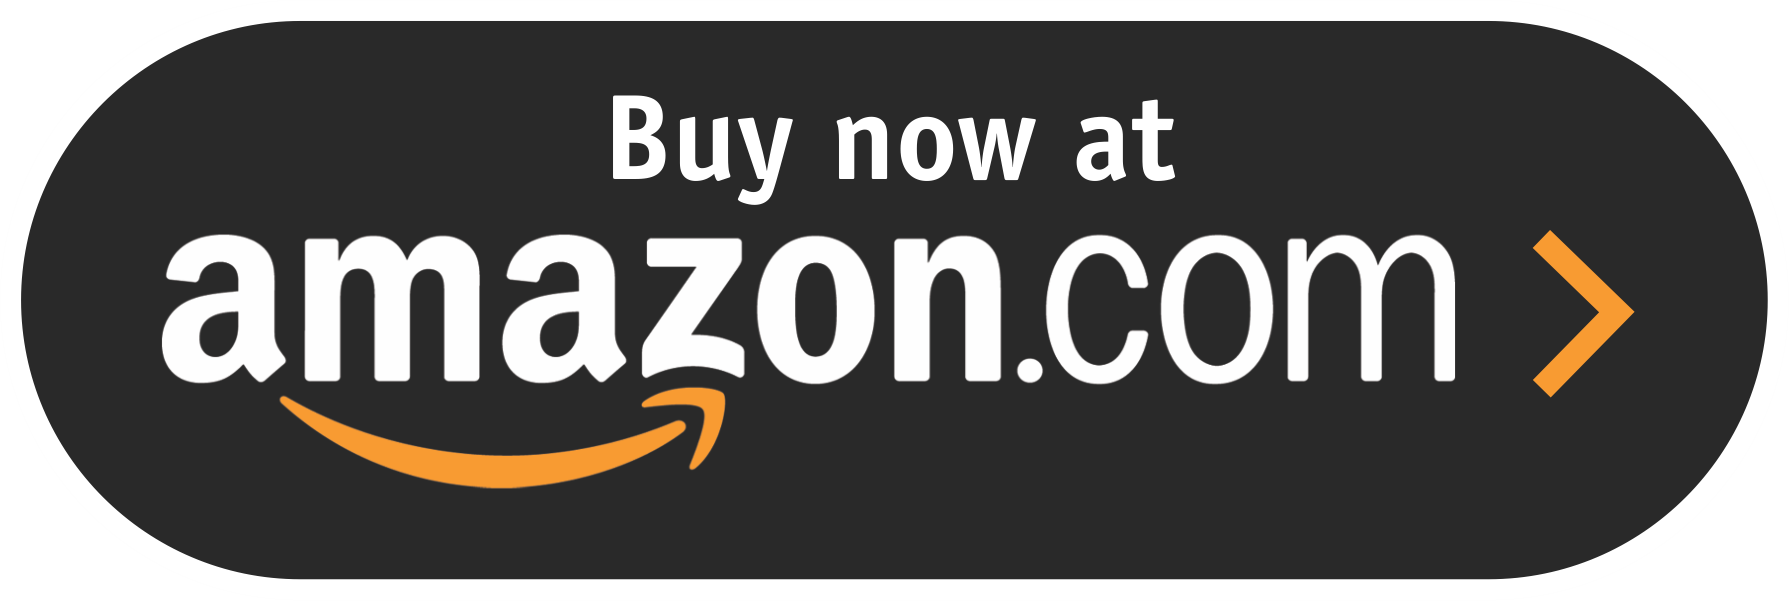 Buy now at Amazon.com.PNG